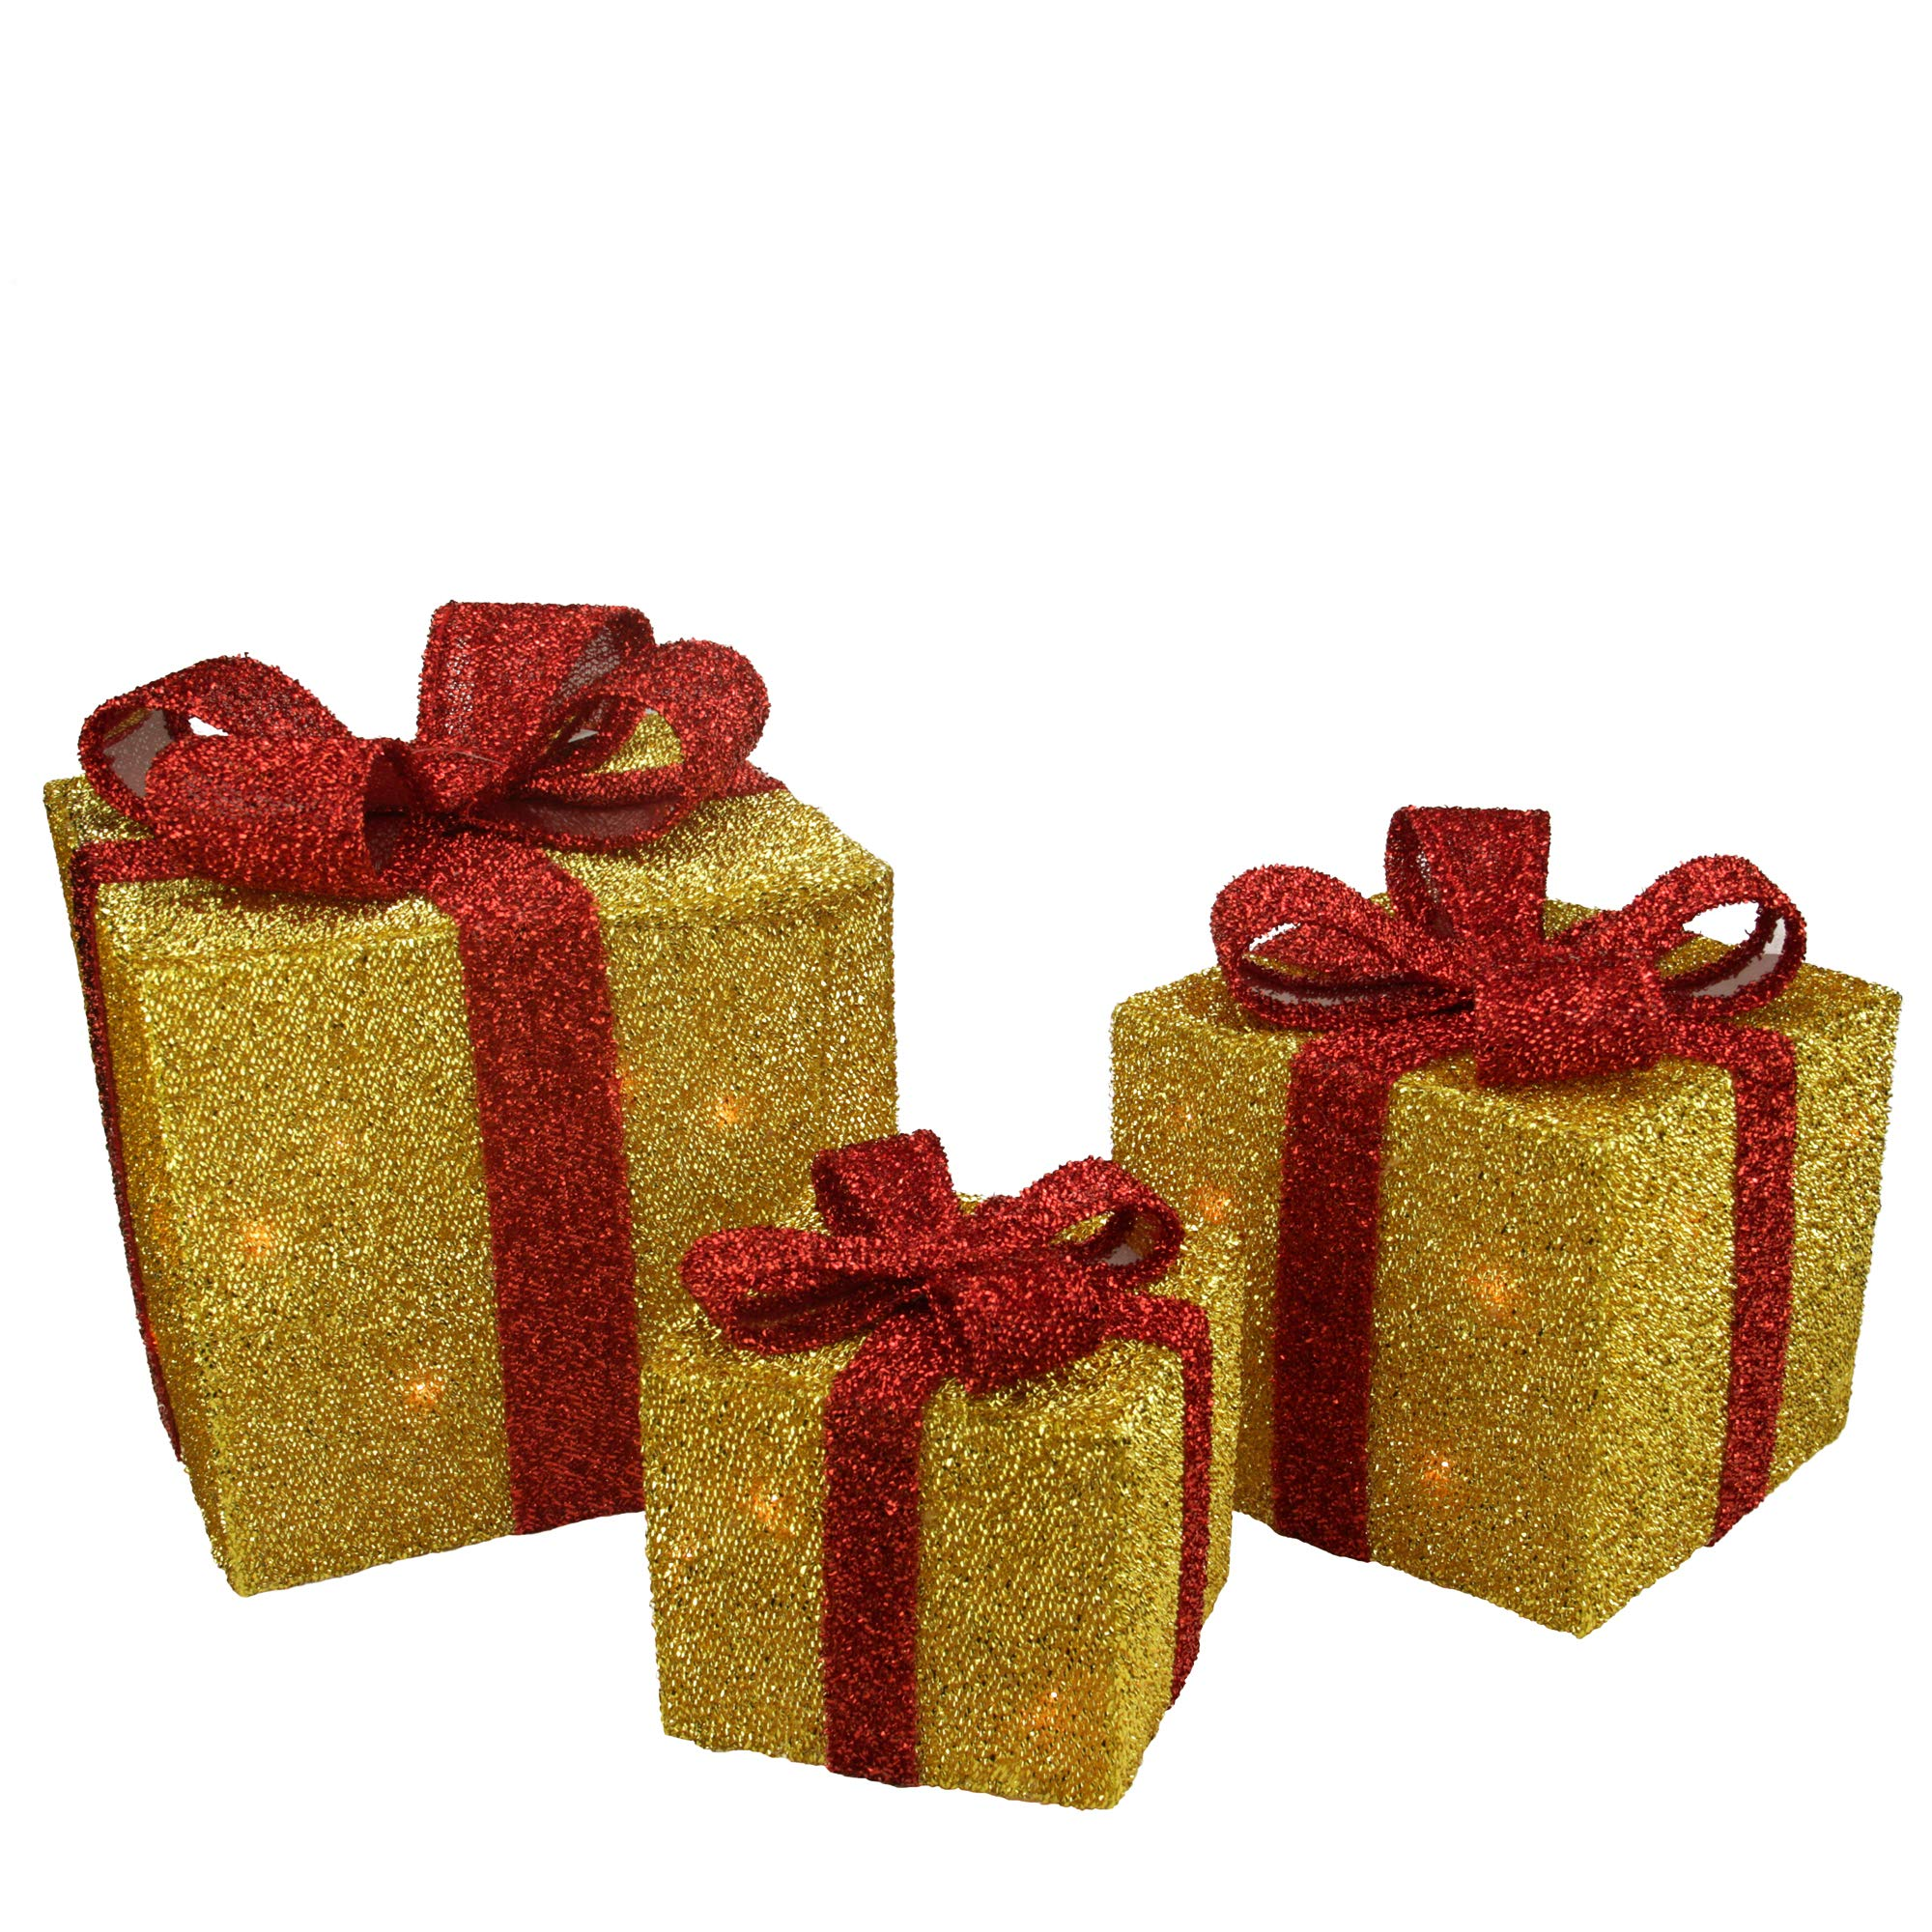 Northlight Set of 3 Gold Tinsel Gift Boxes with Red Bows Lighted Christmas Outdoor Decorations by Northlight (Image #1)